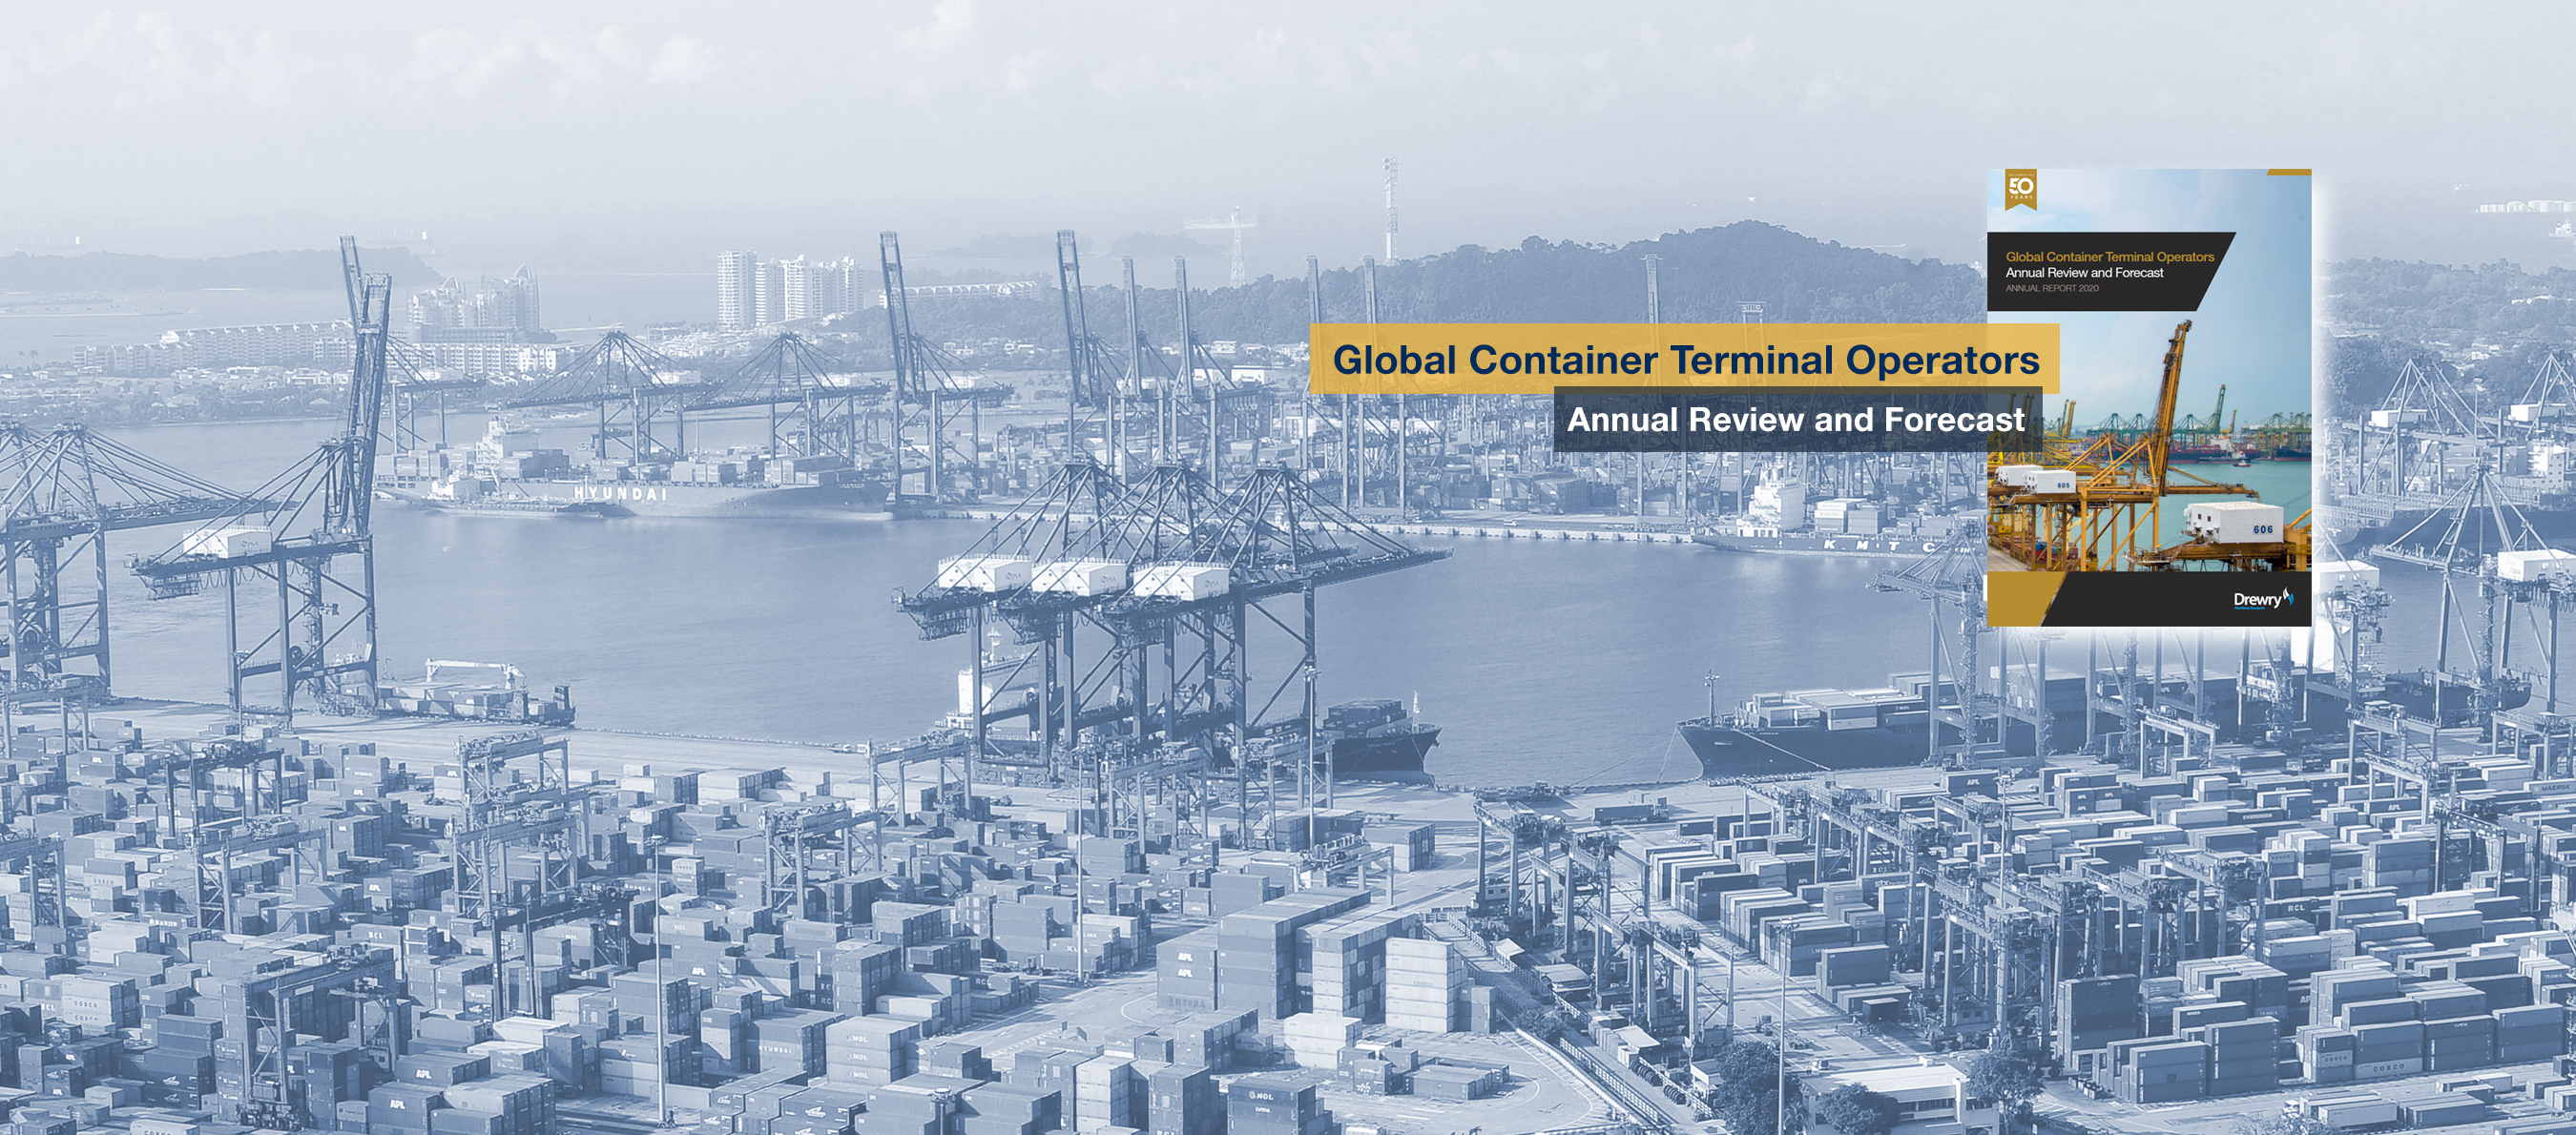 /maritime-research-products/global-container-terminal-operators-annual-review-and-forecast-202021